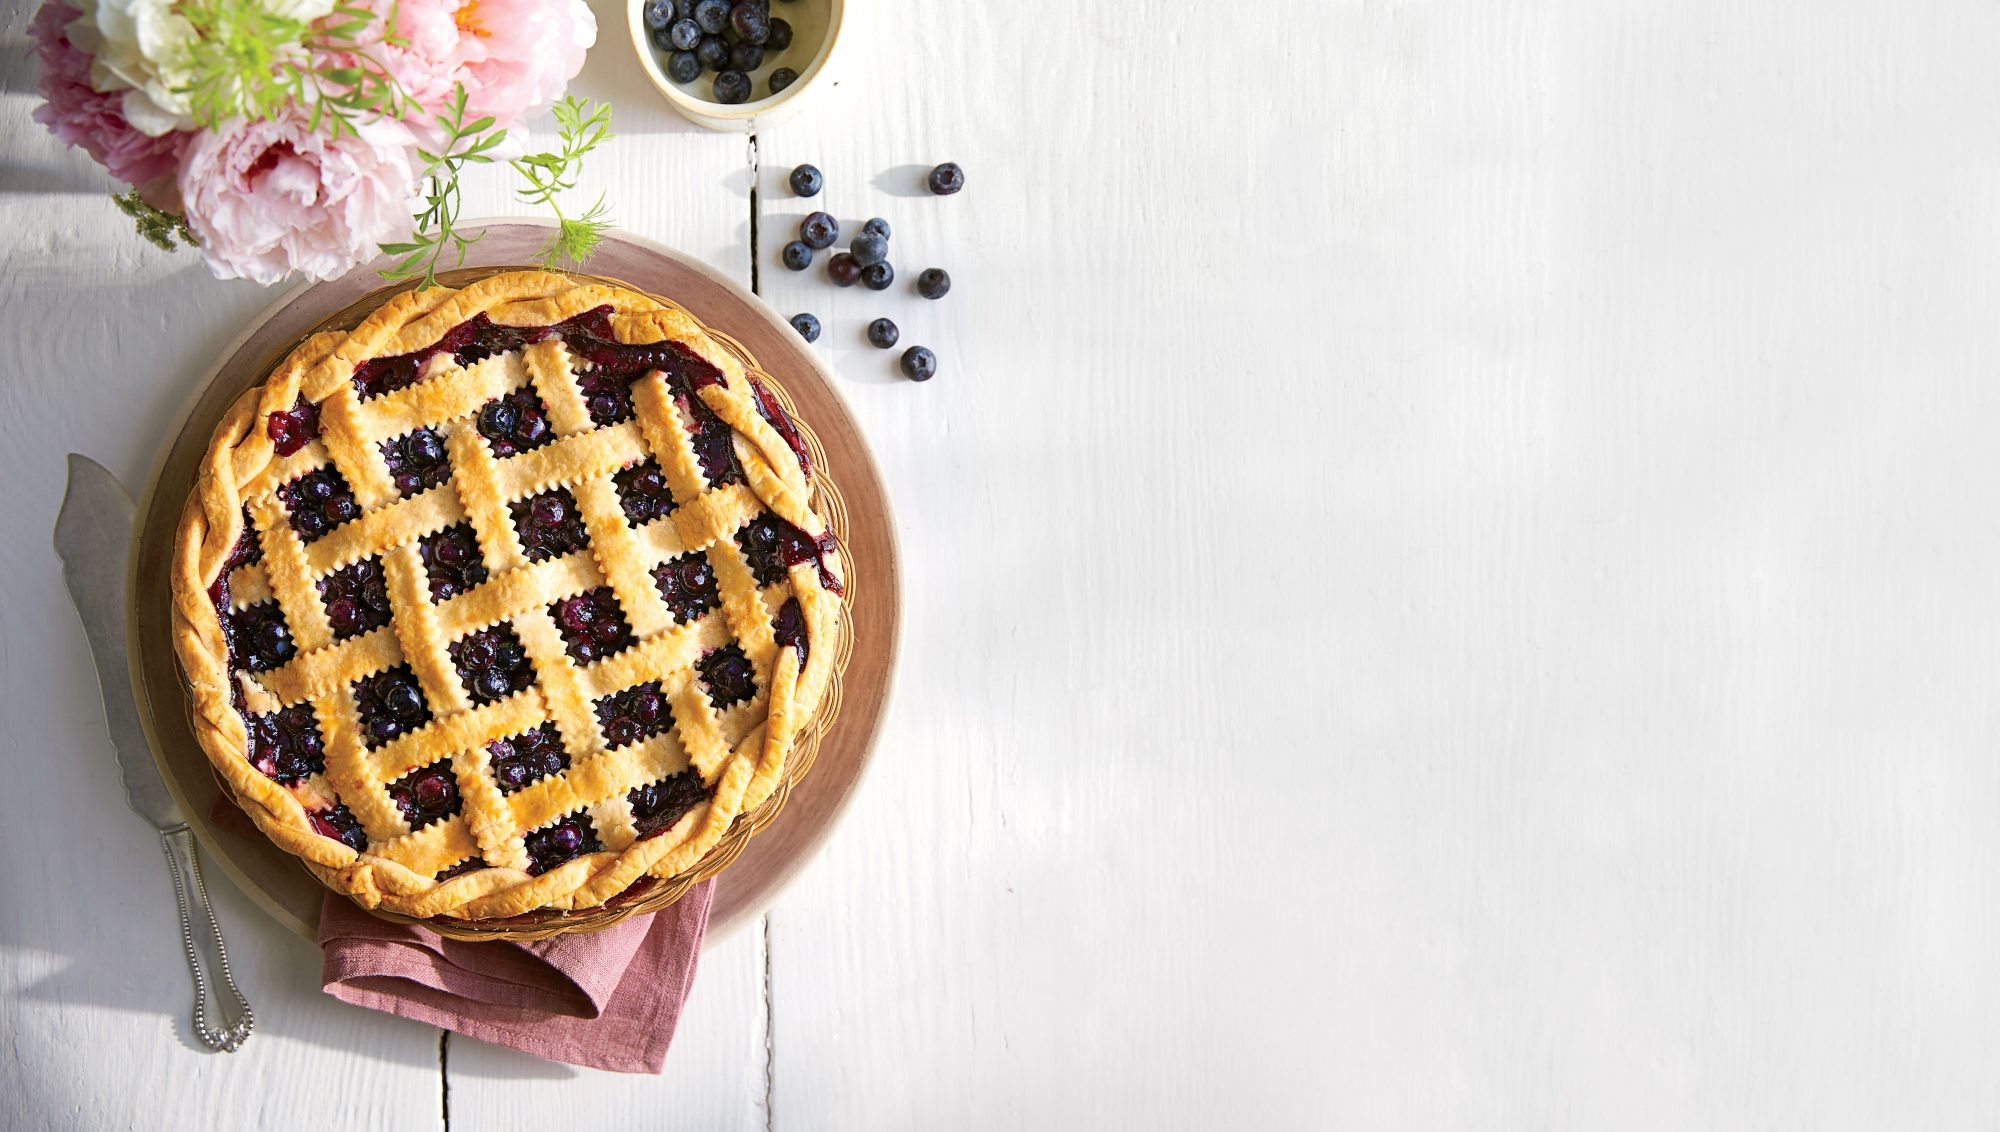 Honey-Balsamic Blueberry Pie